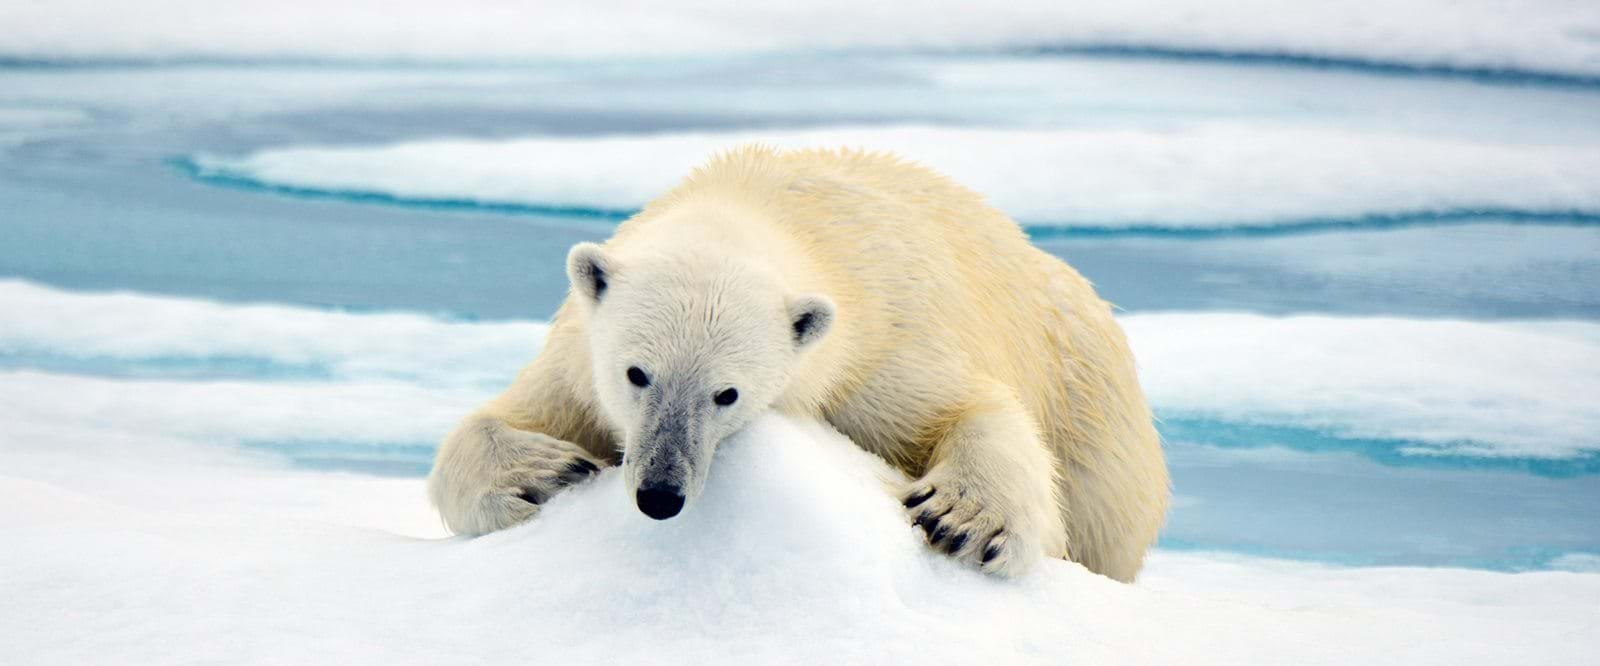 Polar bear, Svalbard, Arctic wildlife